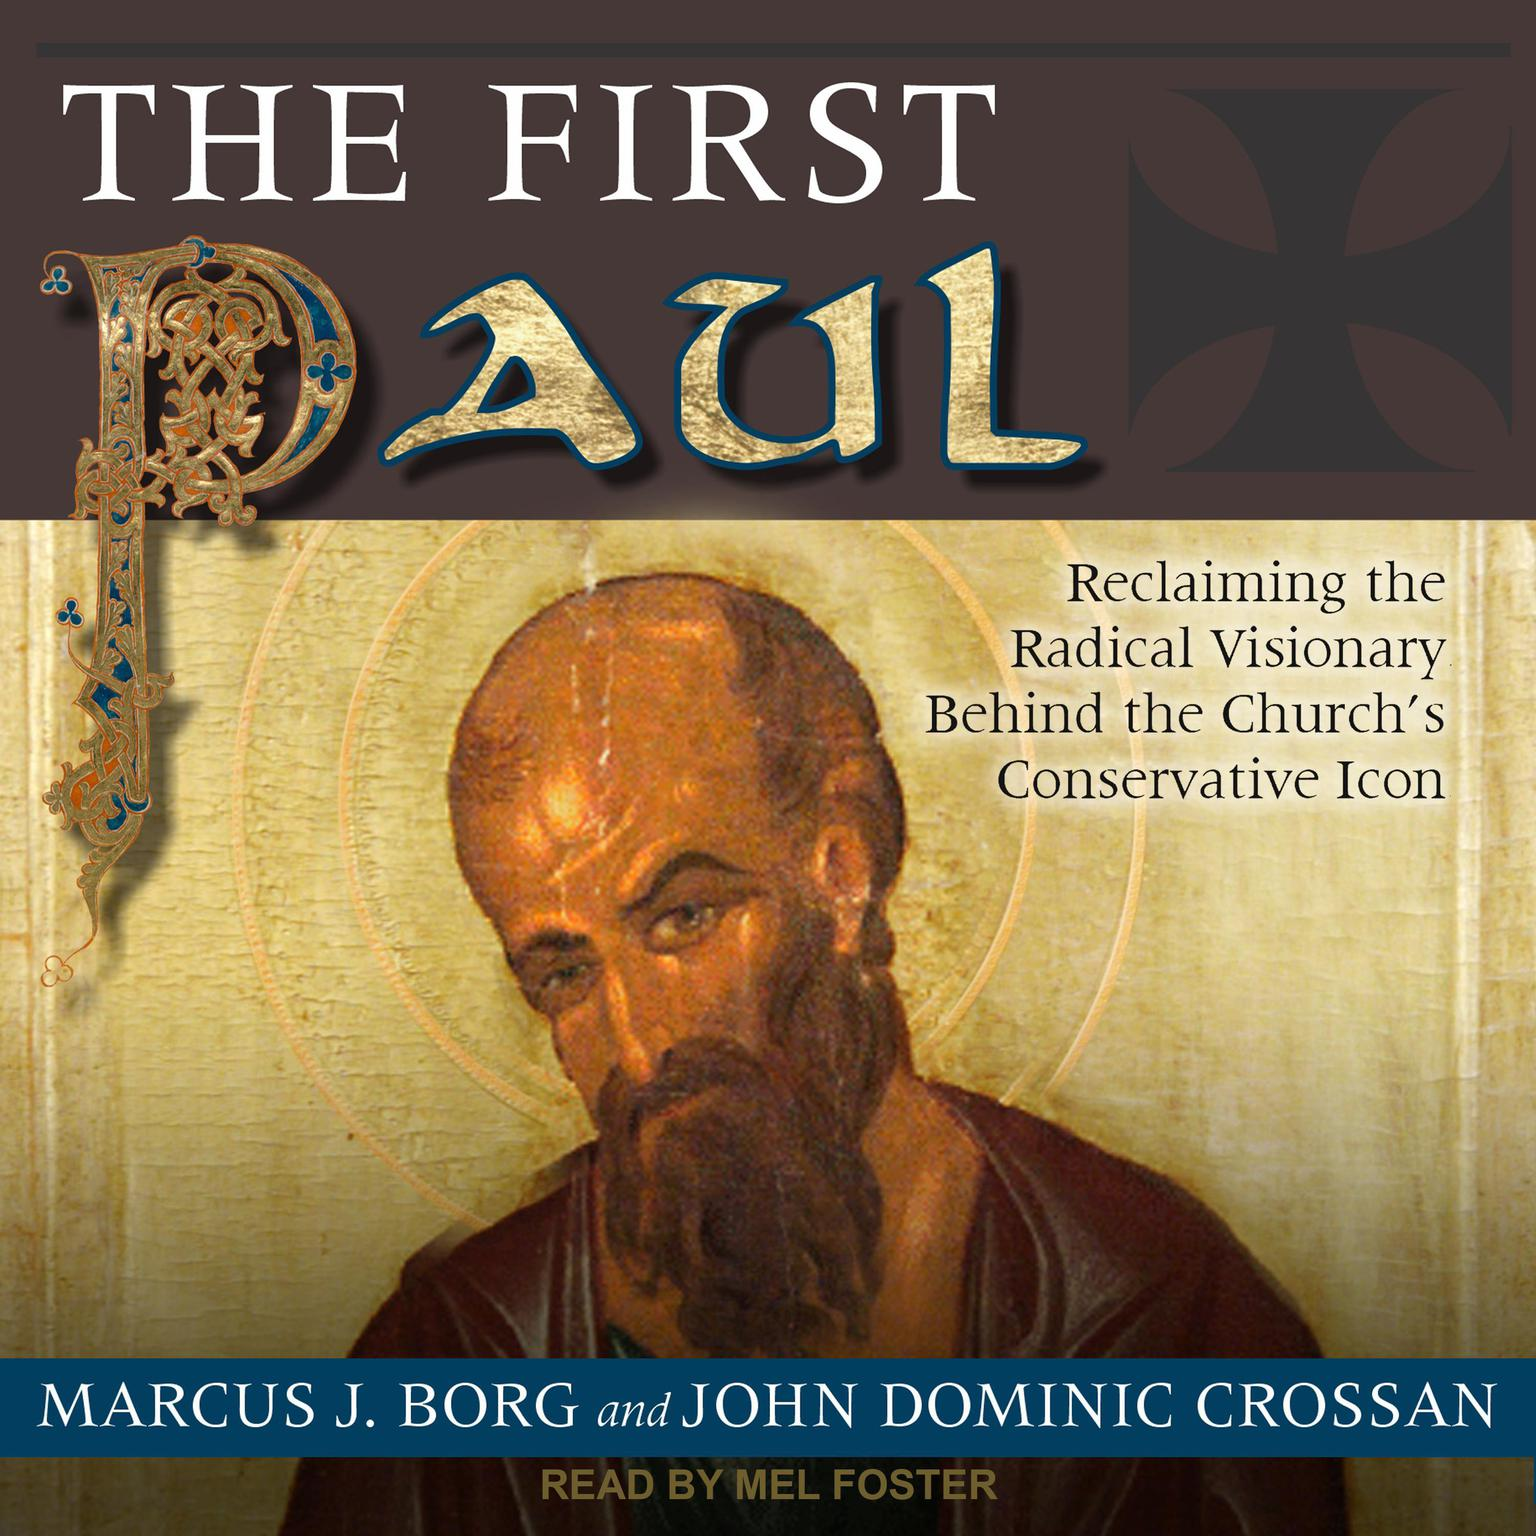 Printable The First Paul: Reclaiming the Radical Visionary Behind the Church's Conservative Icon Audiobook Cover Art